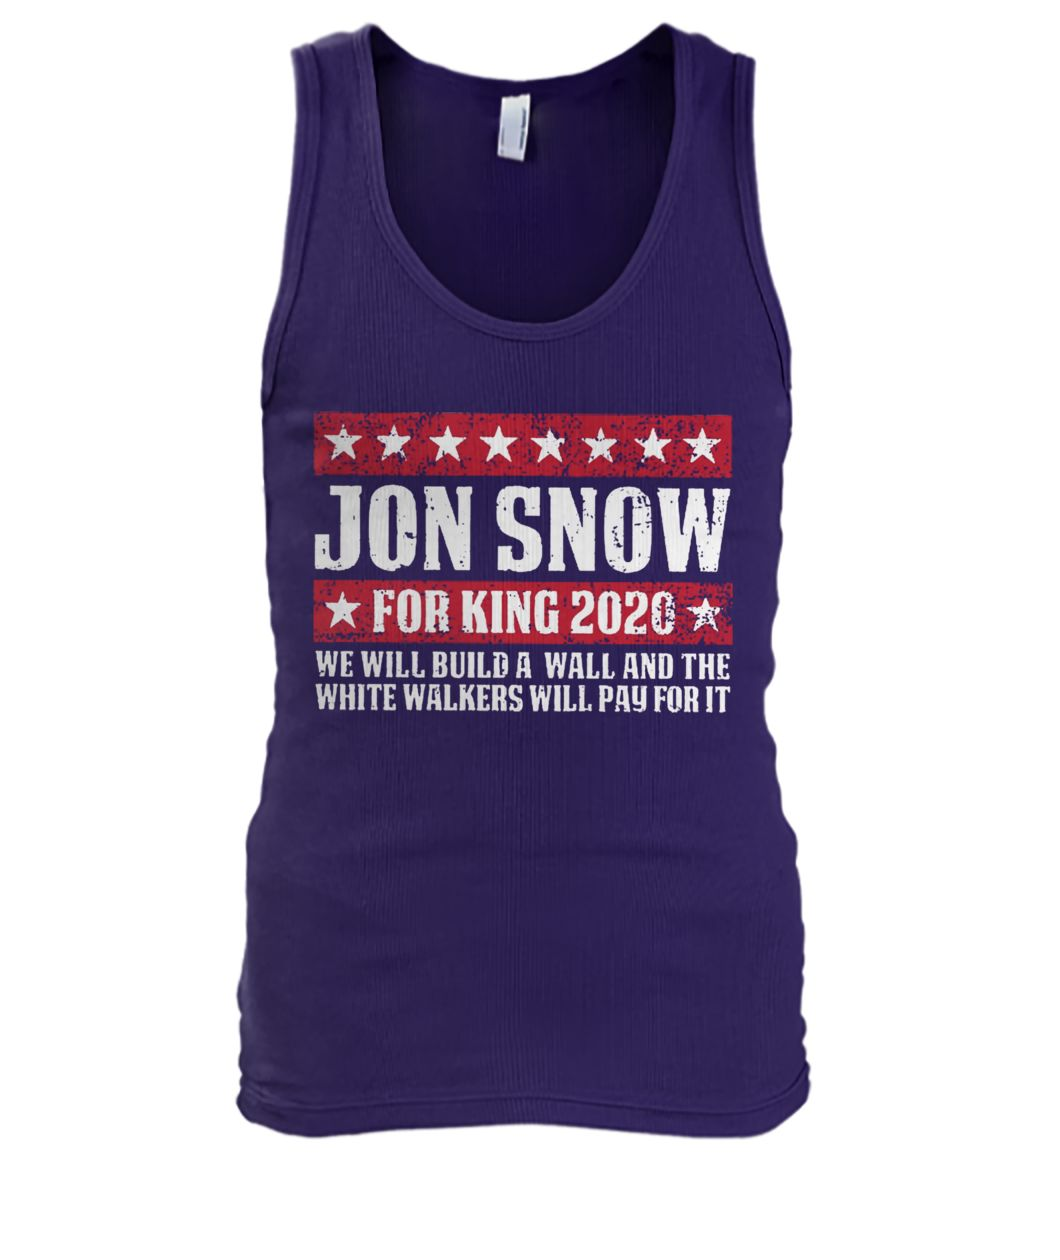 Game of thrones Jon snow for king 2020 men's tank top